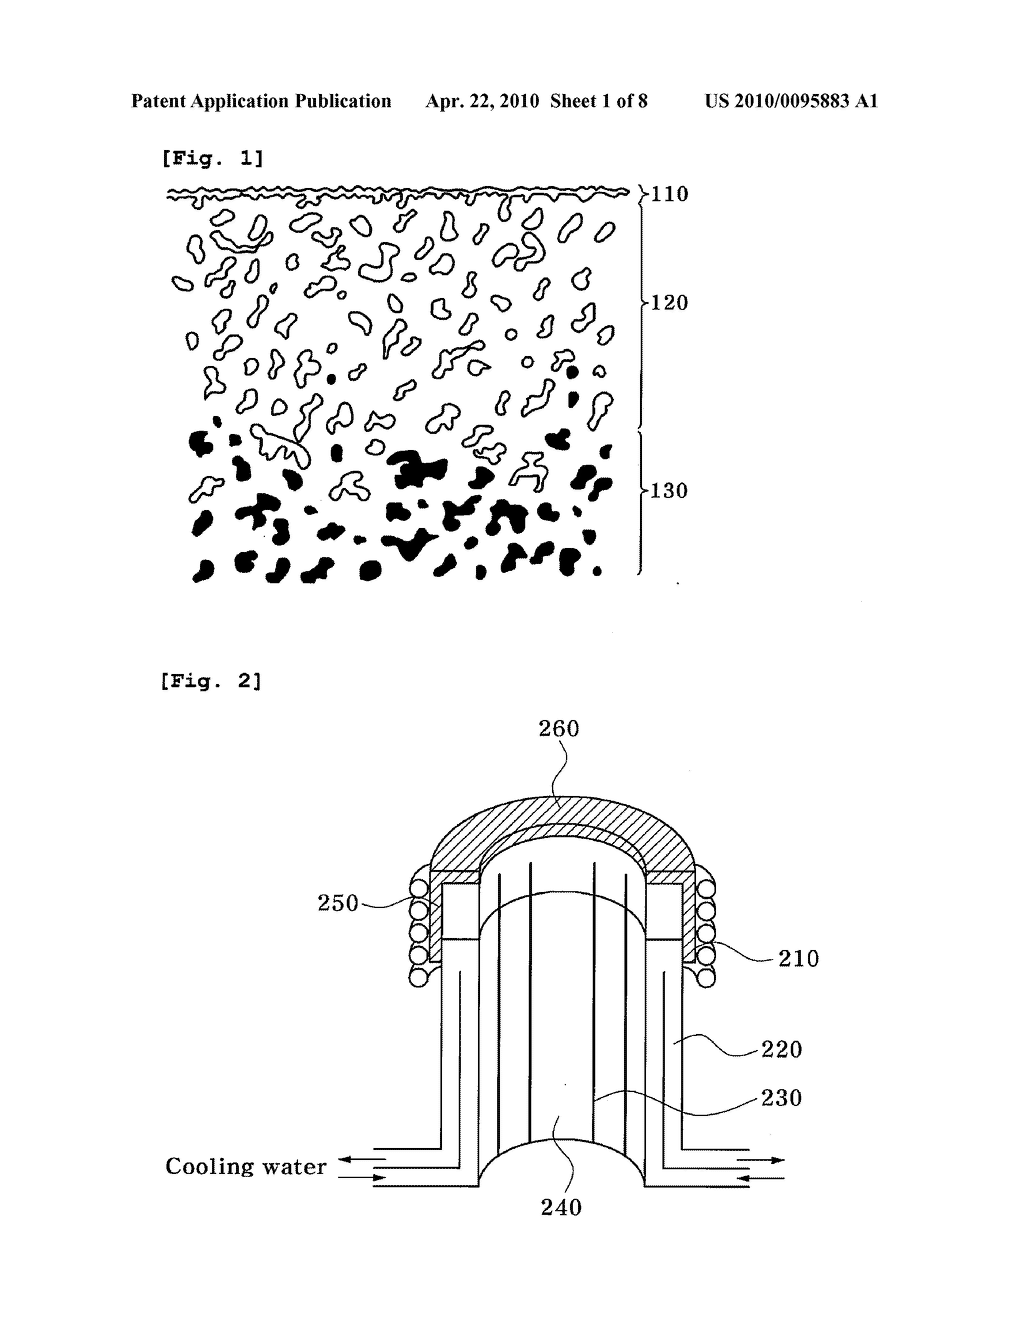 GRAPHITE CRUCIBLE FOR SILICON ELECTROMAGNETIC INDUCTION HEATING AND APPARATUS FOR SILICON MELTING AND REFINING USING THE GRAPHITE CRUCIBLE - diagram, schematic, and image 02